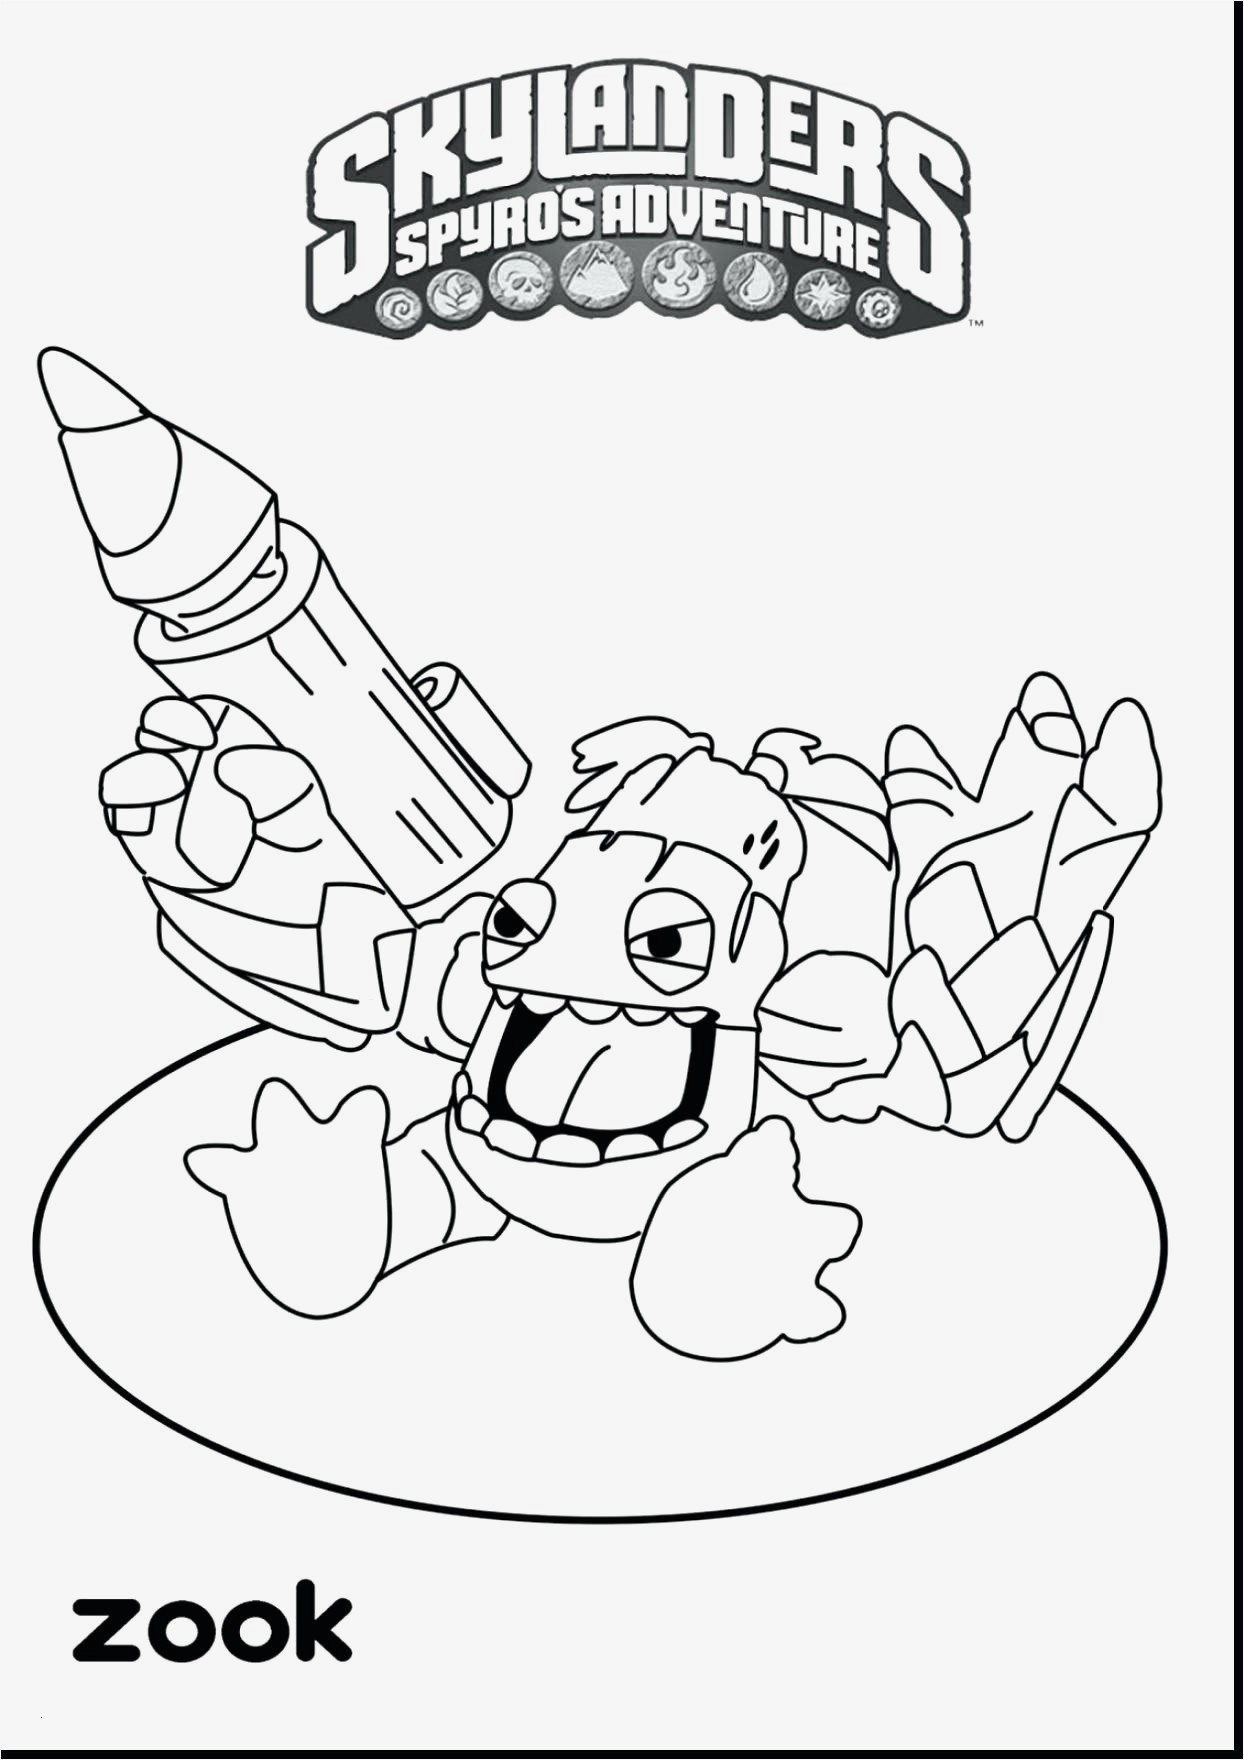 Wedding Coloring Pages Free Printable Wedding Coloring Pages Unique Free Coloring Pages